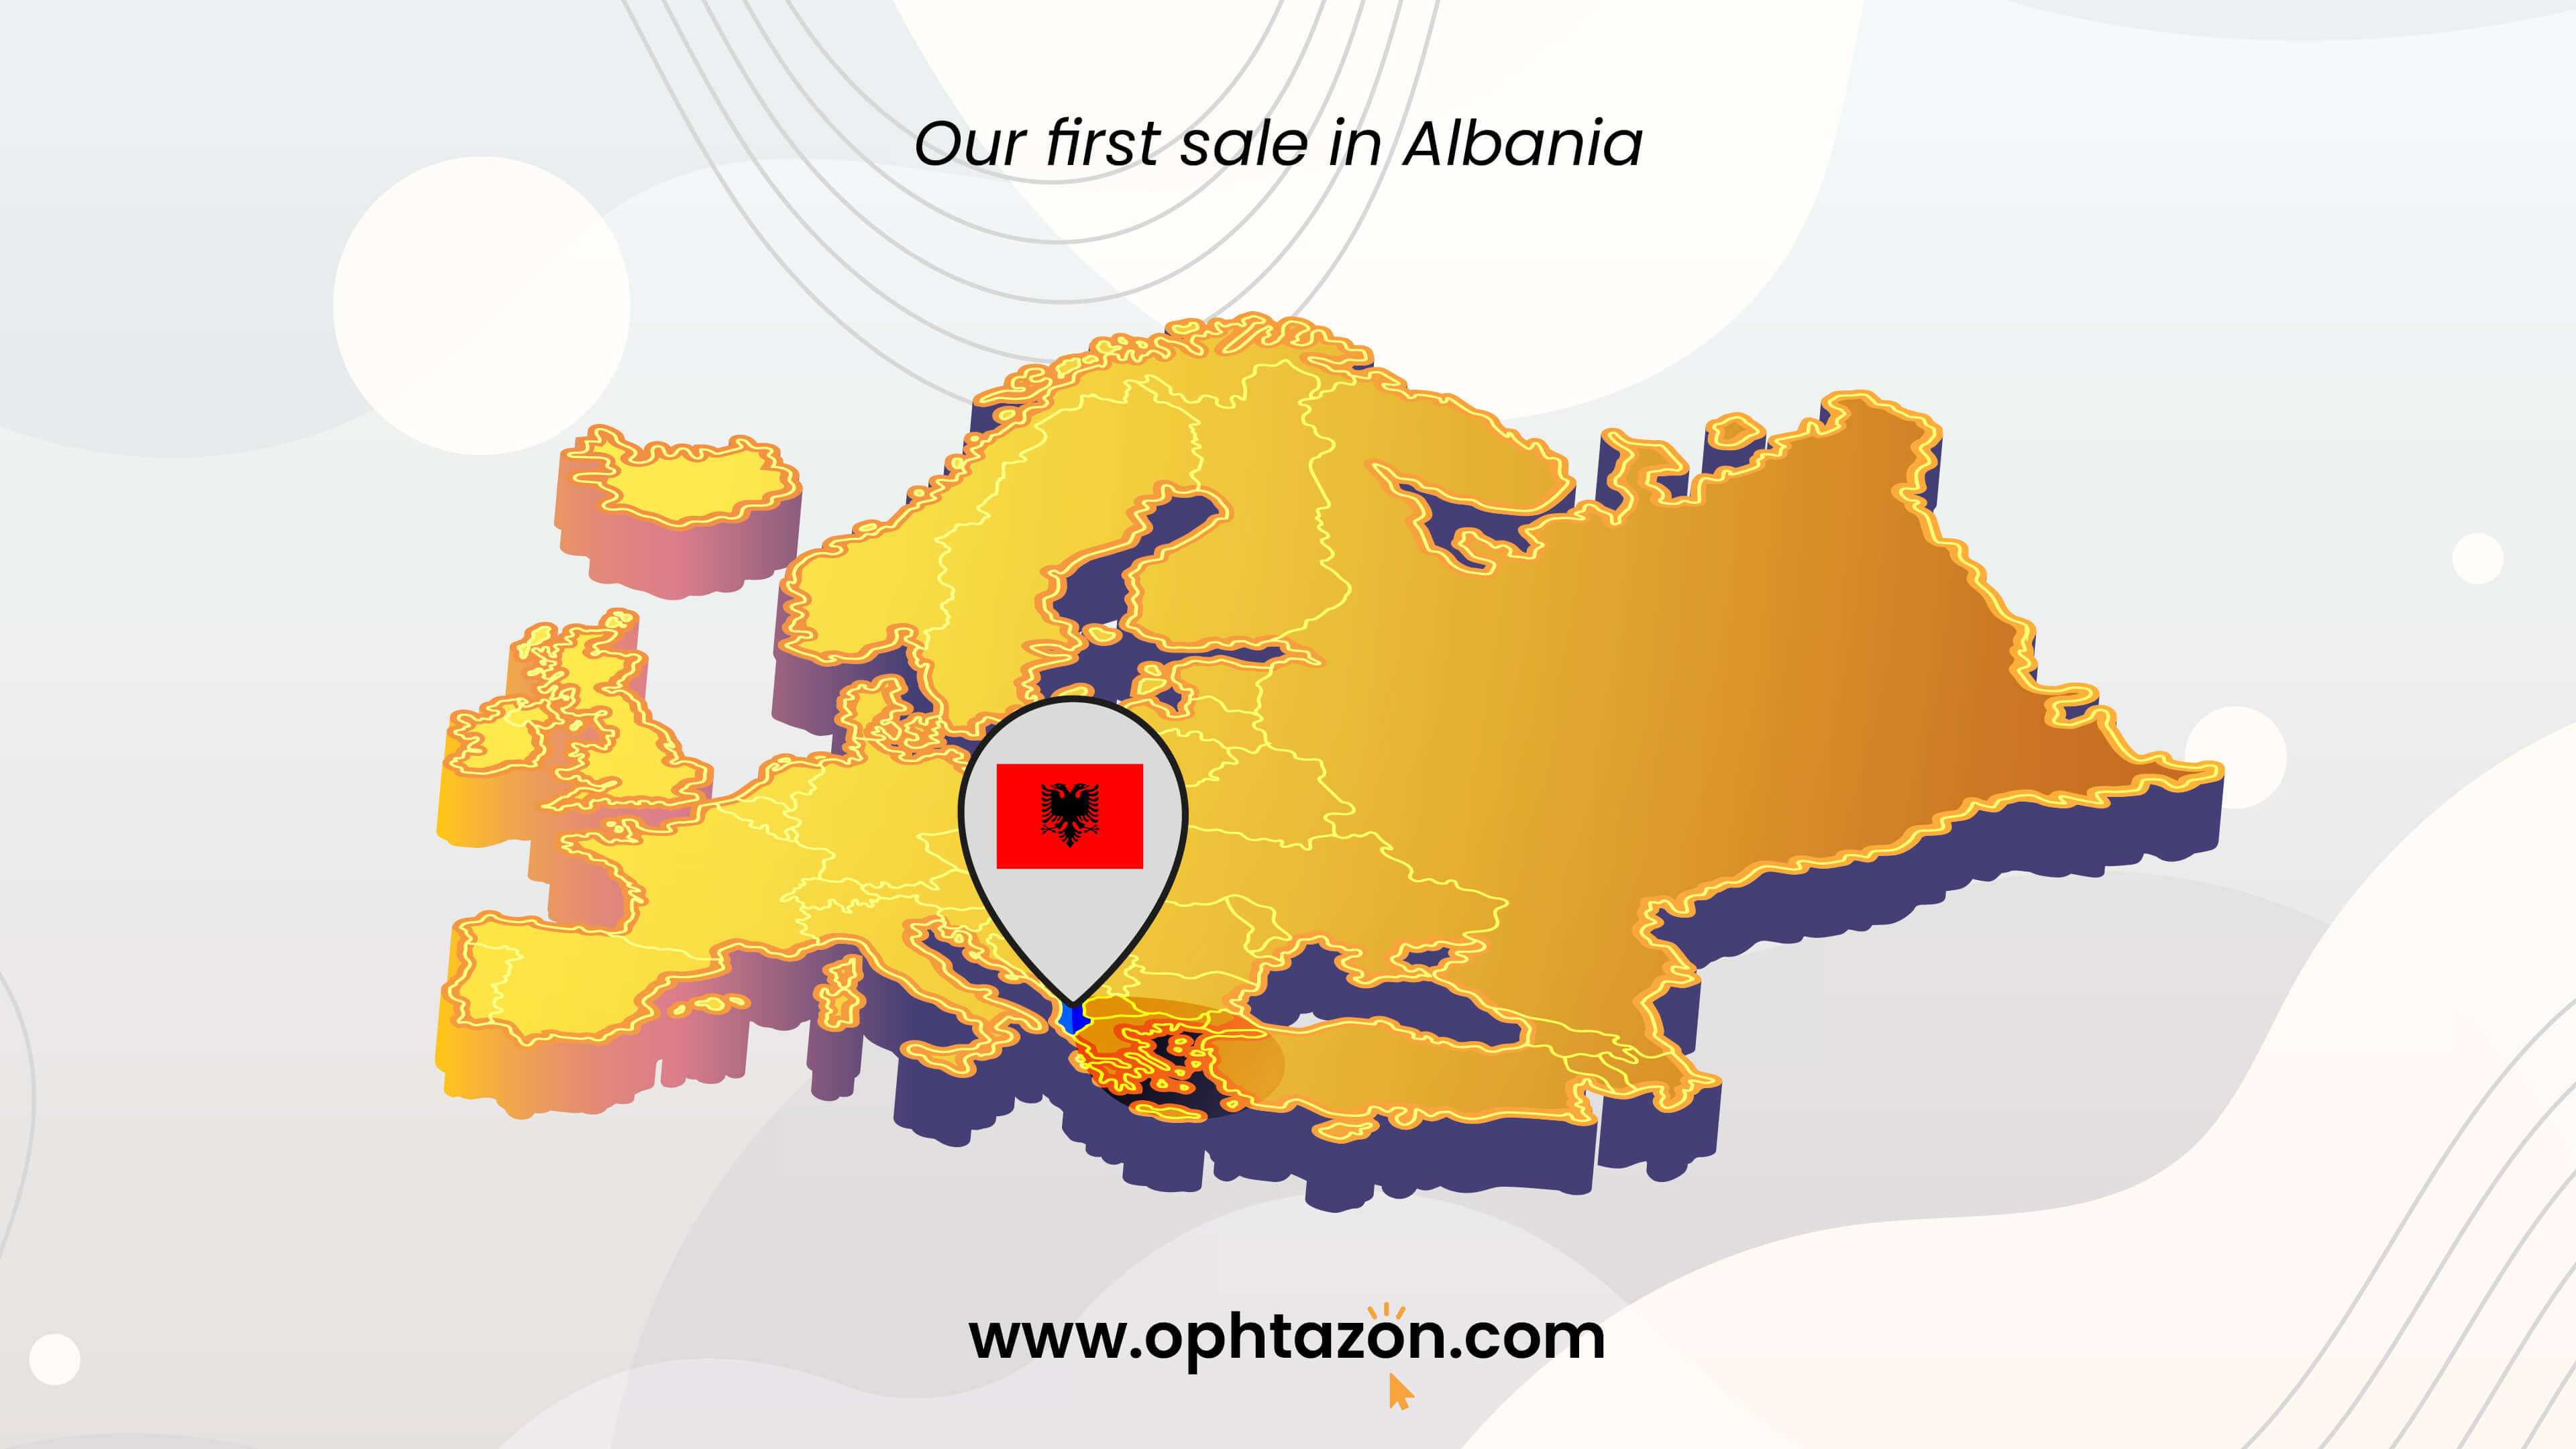 Albania on our website OPHTAZON!